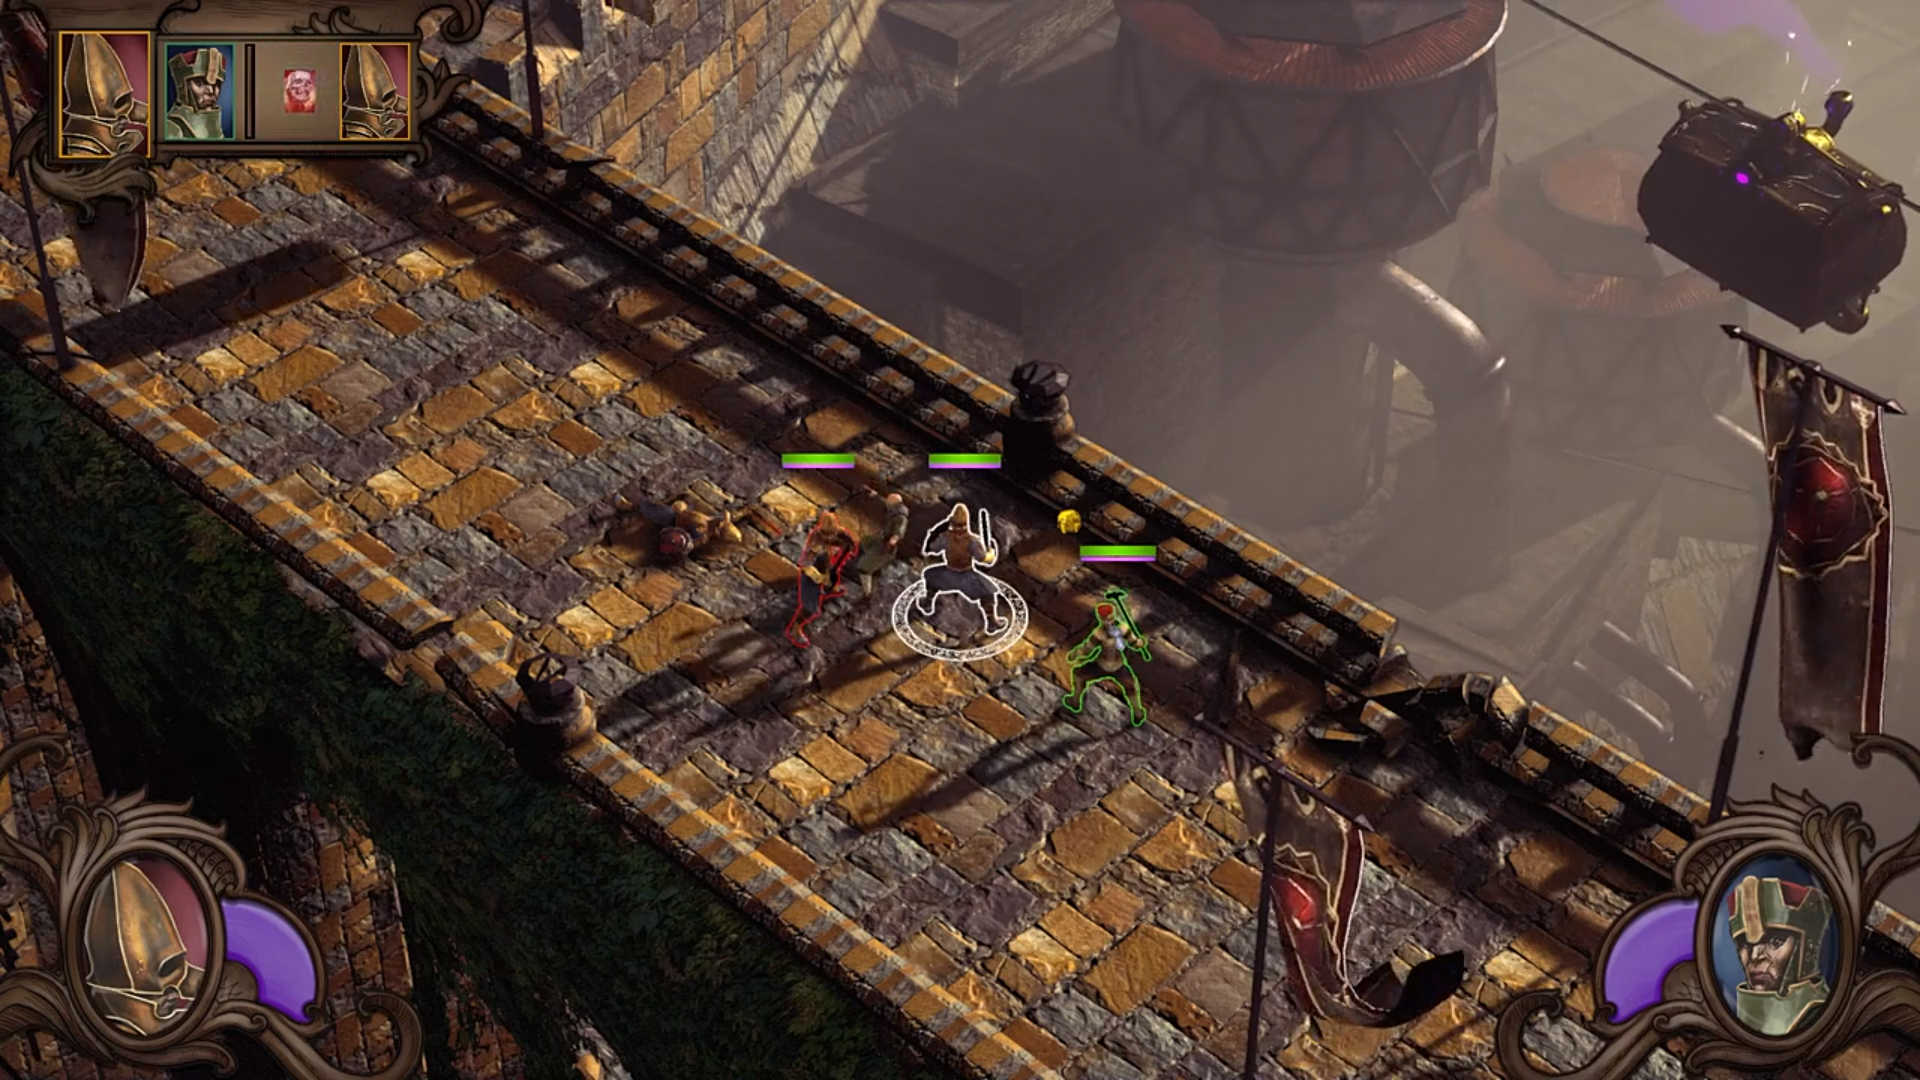 Isometric view of a battle on a bridge.